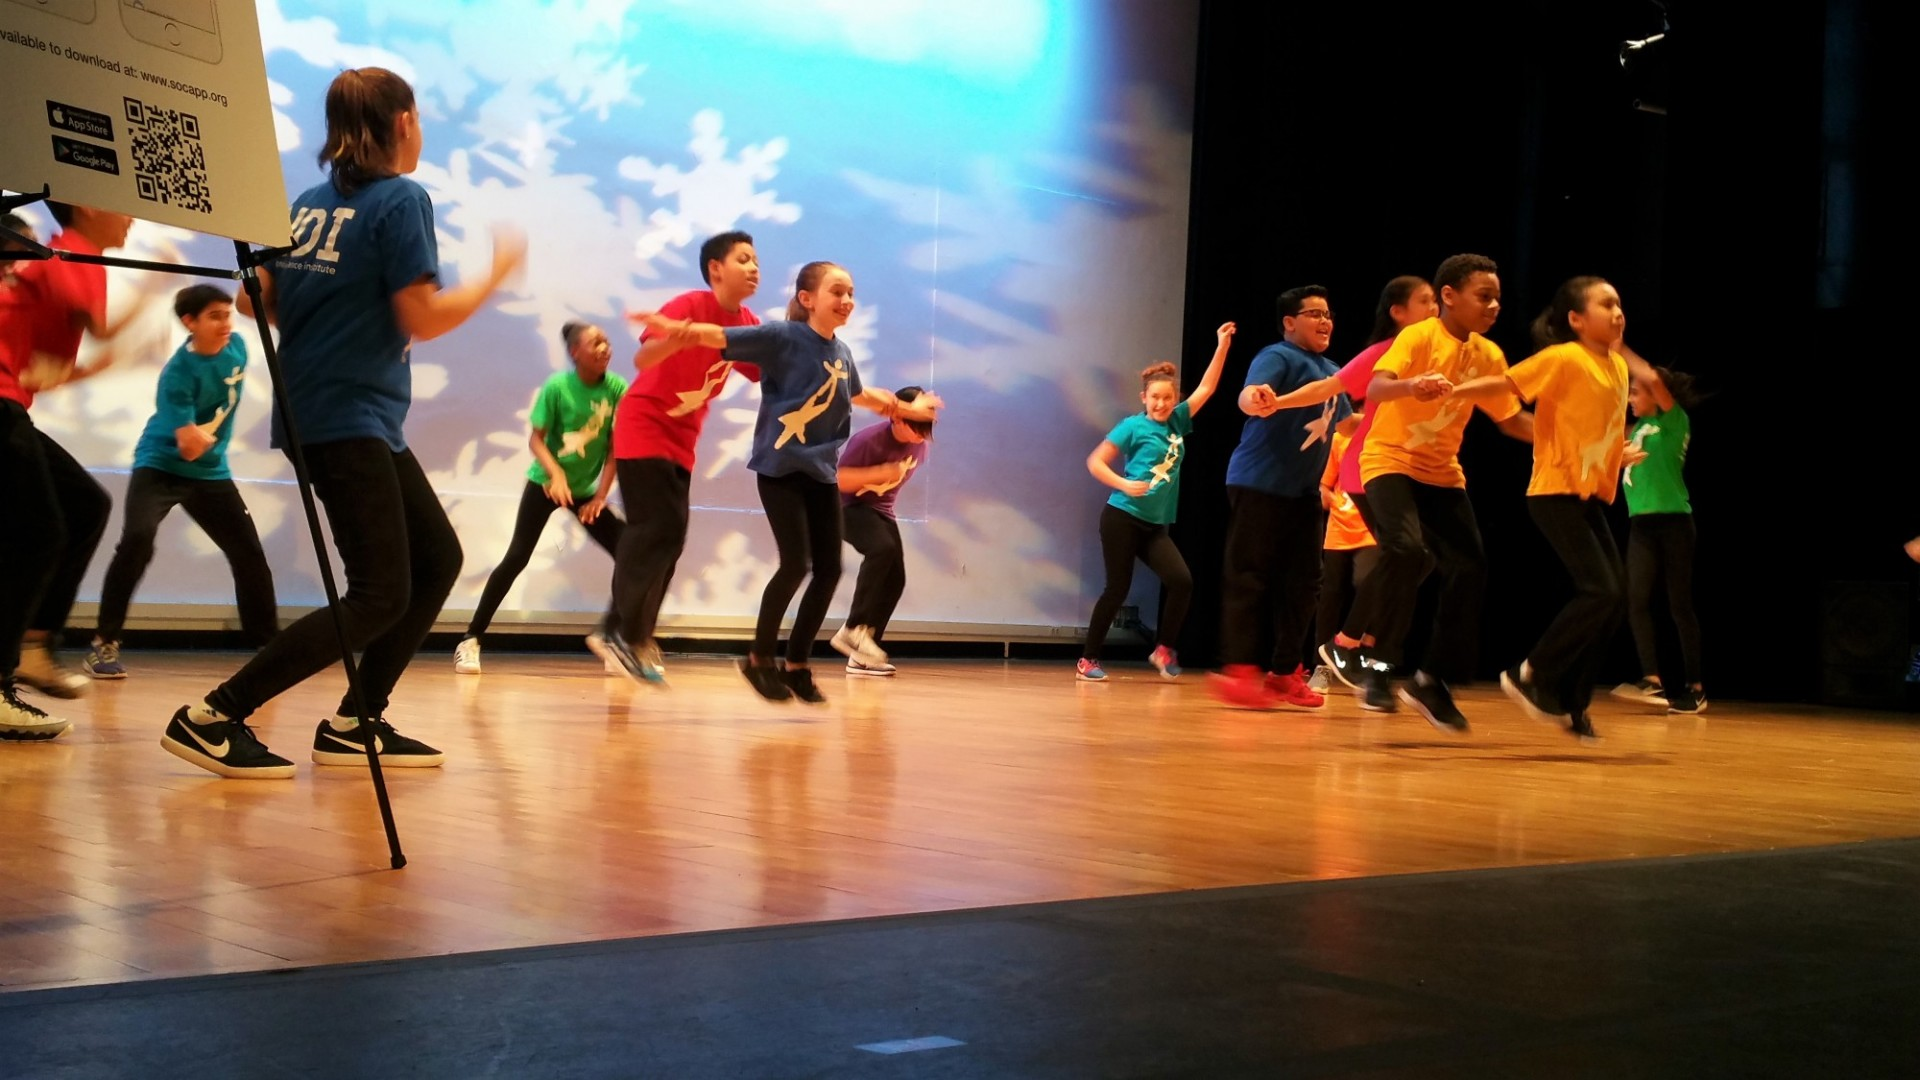 Students dance on stage at Miller Theater